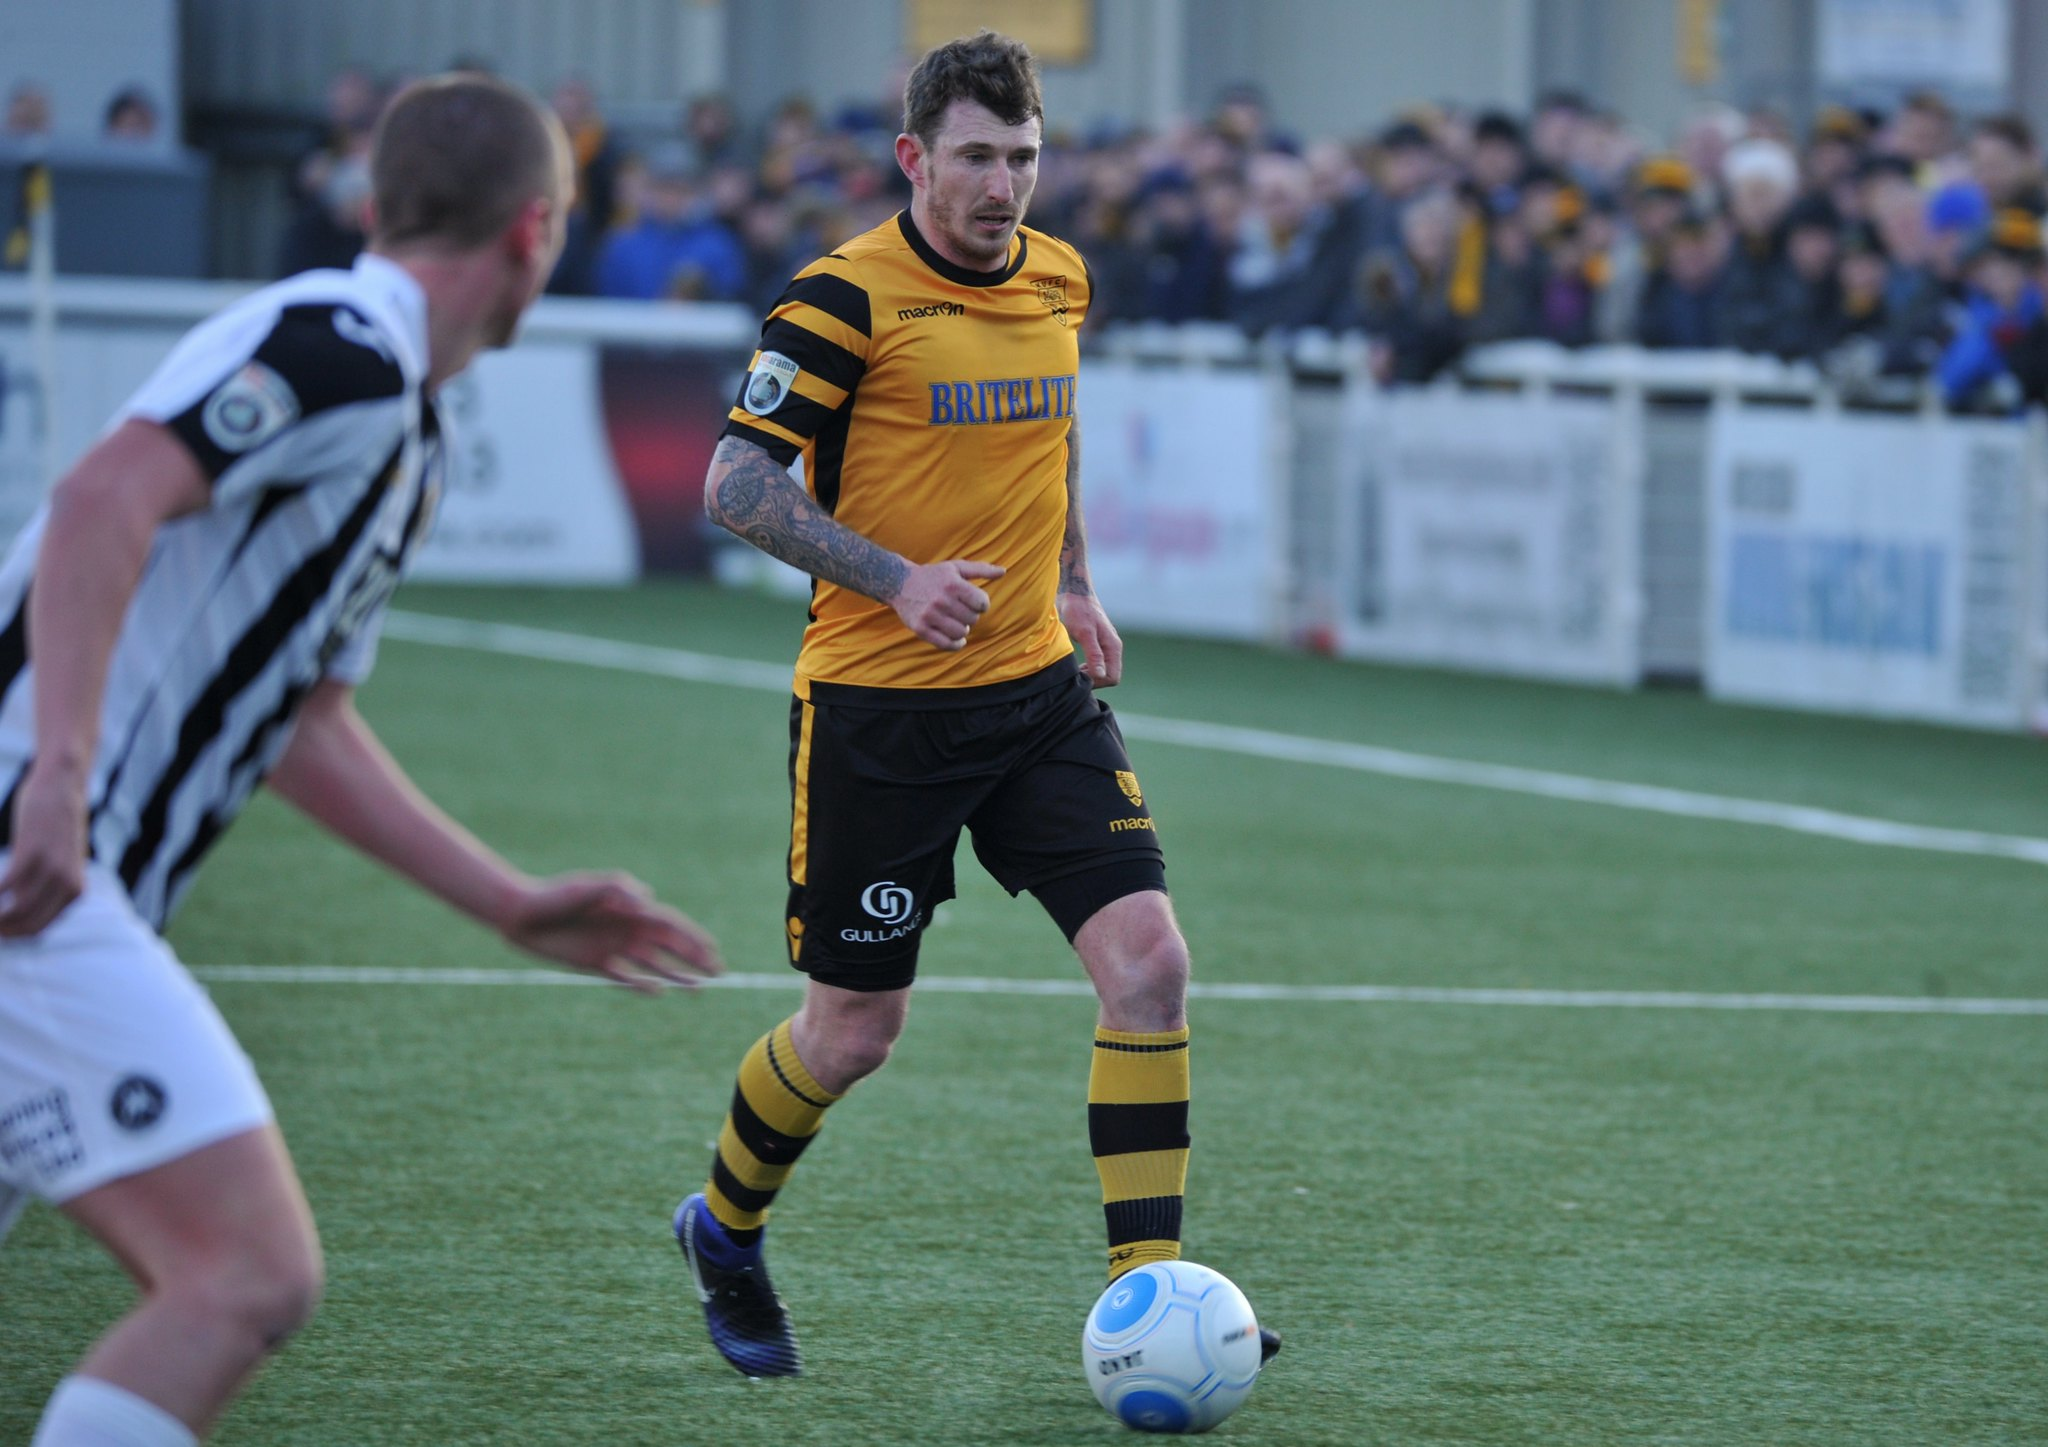 Maidstone United v Torquay United 204